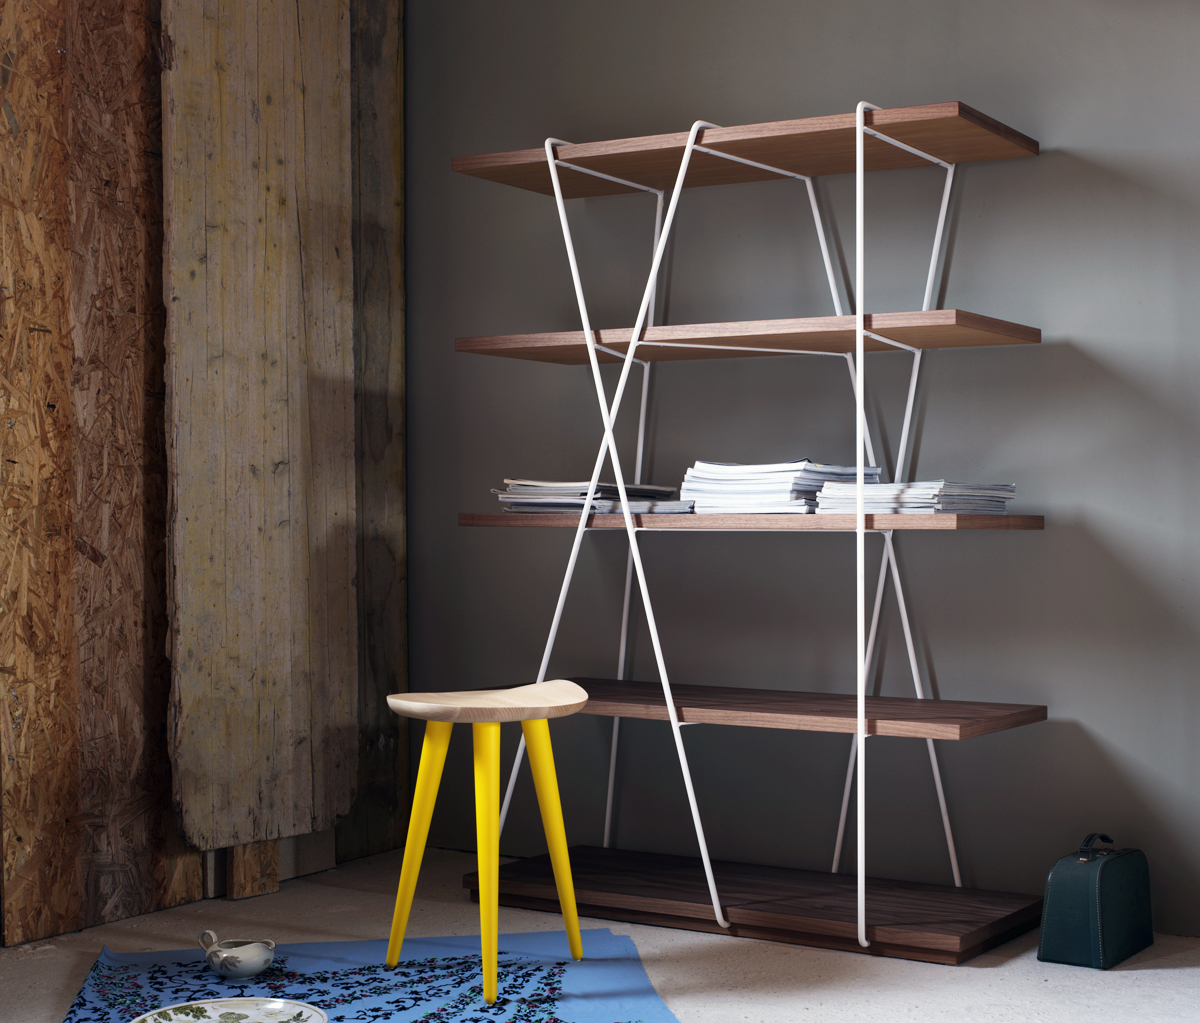 Matassa Bookshelf - Like the yarn from a ball, the fine lines of the bookcase neatly wrap around the shelves. And so Matassa becomes a curious addition with a pleasing balance. | Matter of Stuff